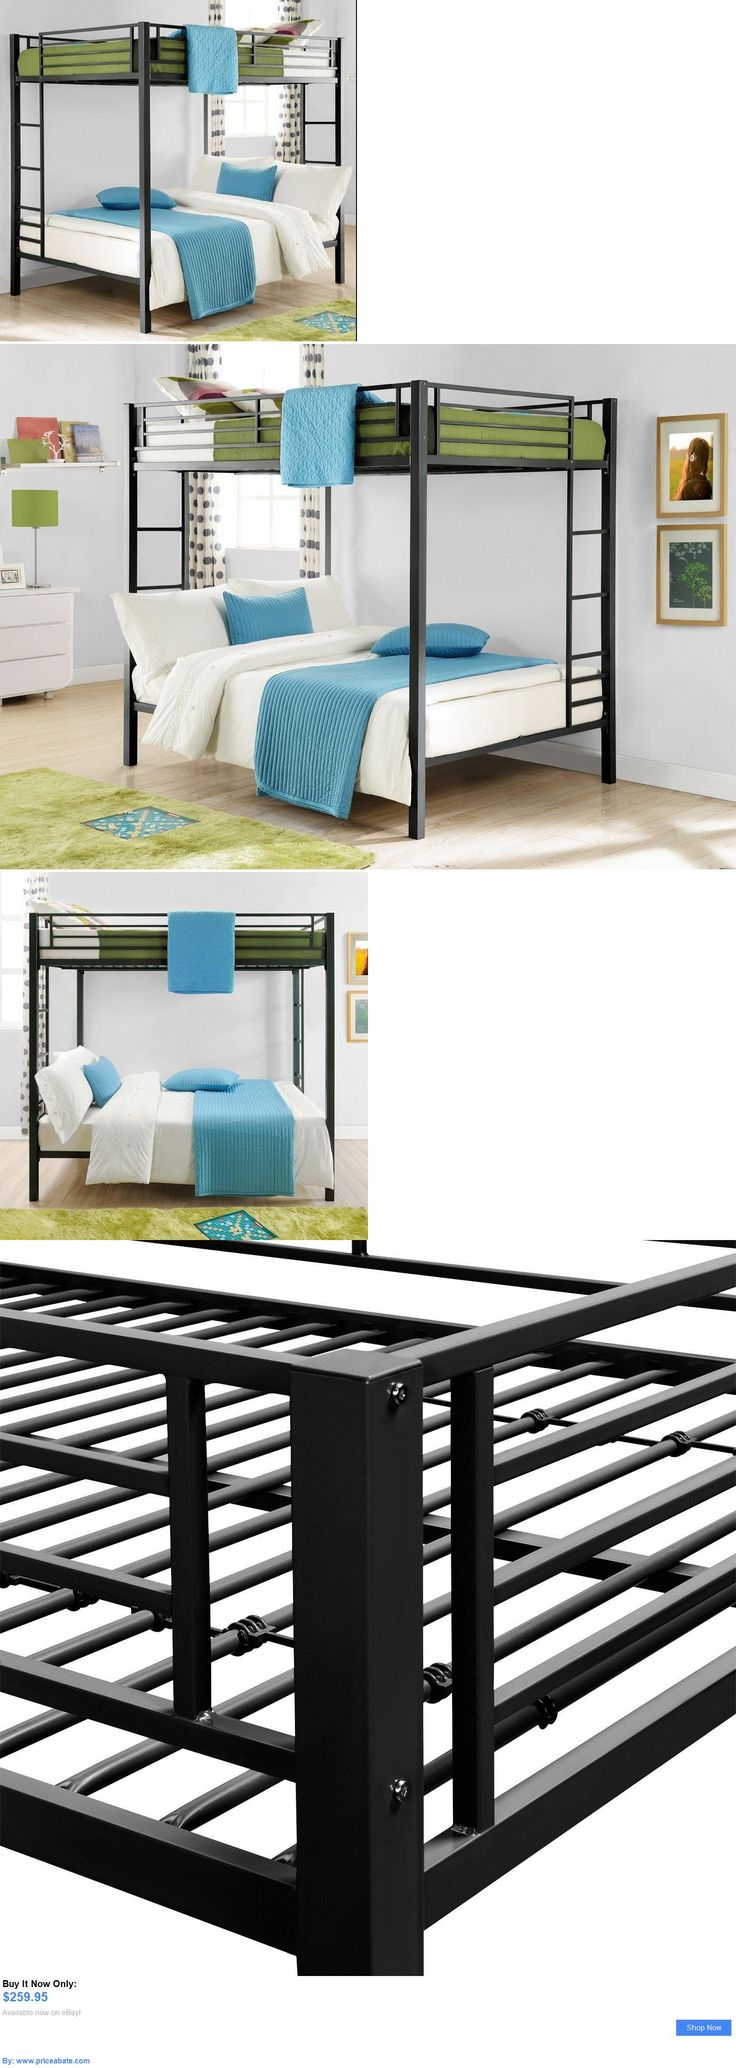 Crib for sale mandaluyong - Kids Furniture Bunk Beds On Sale Kids Full Size Over Double Bedroom Loft Furniture Space